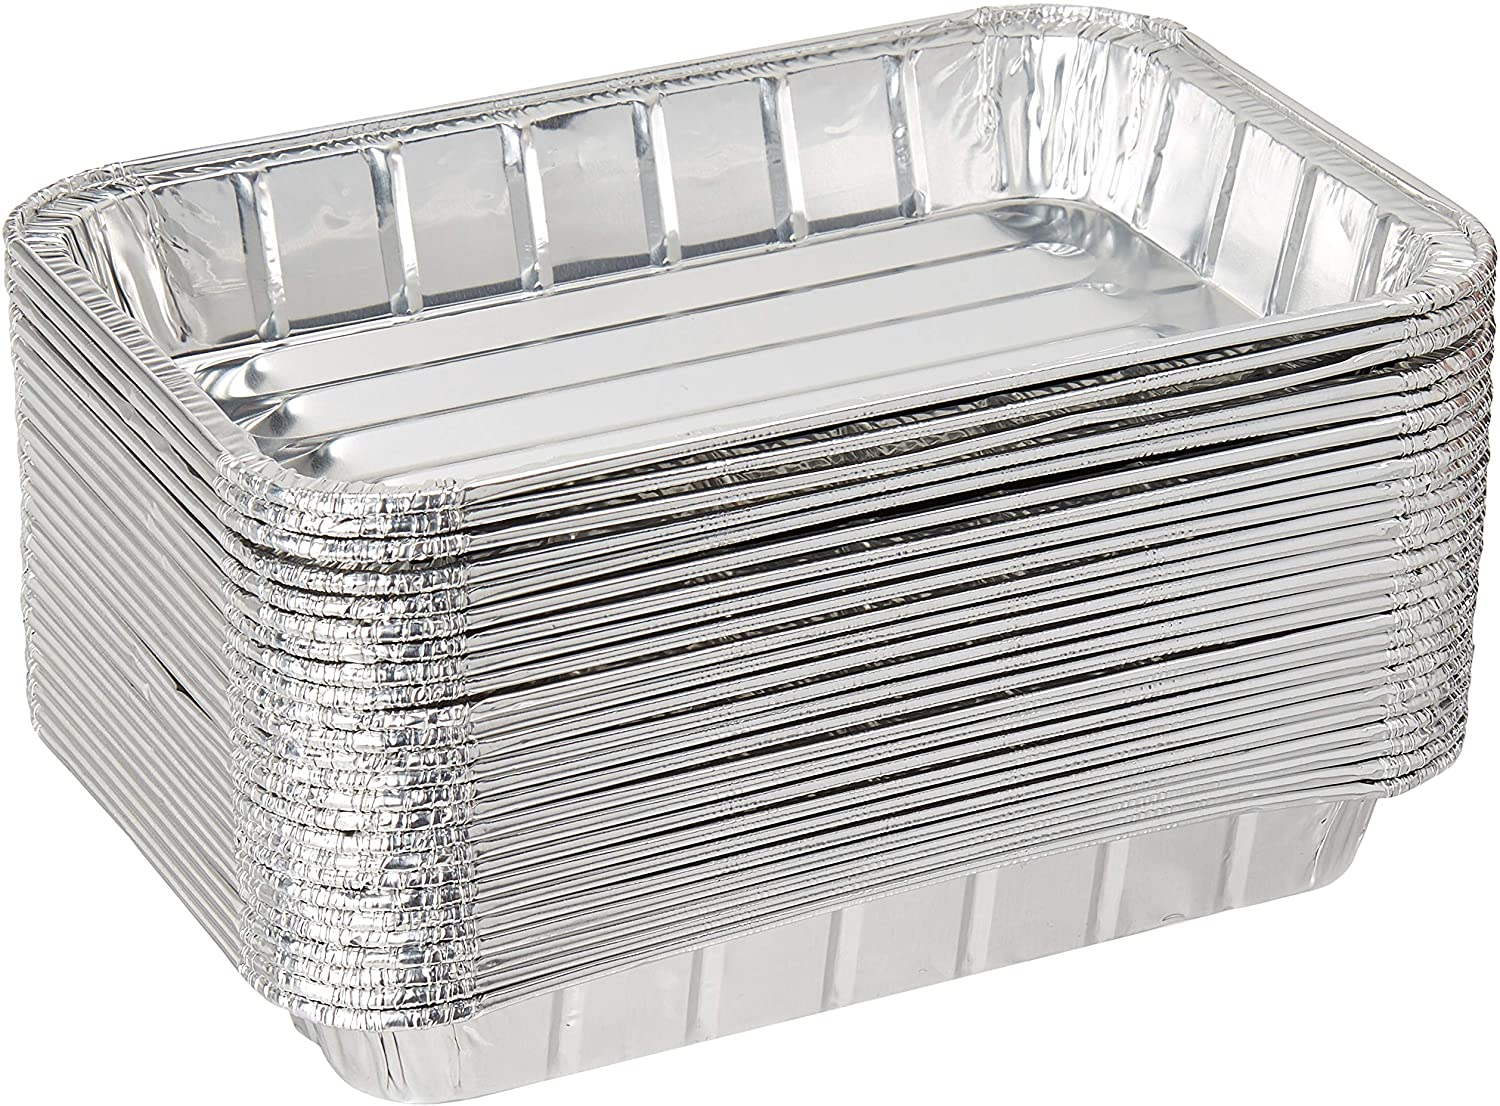 Pack of 25 Disposable Aluminum Foil Toaster Oven Pans - Mini Broiler Pans | BPA Free | Perfect for Small Cakes or Personal Quiche | Standard Size - 8 1/2